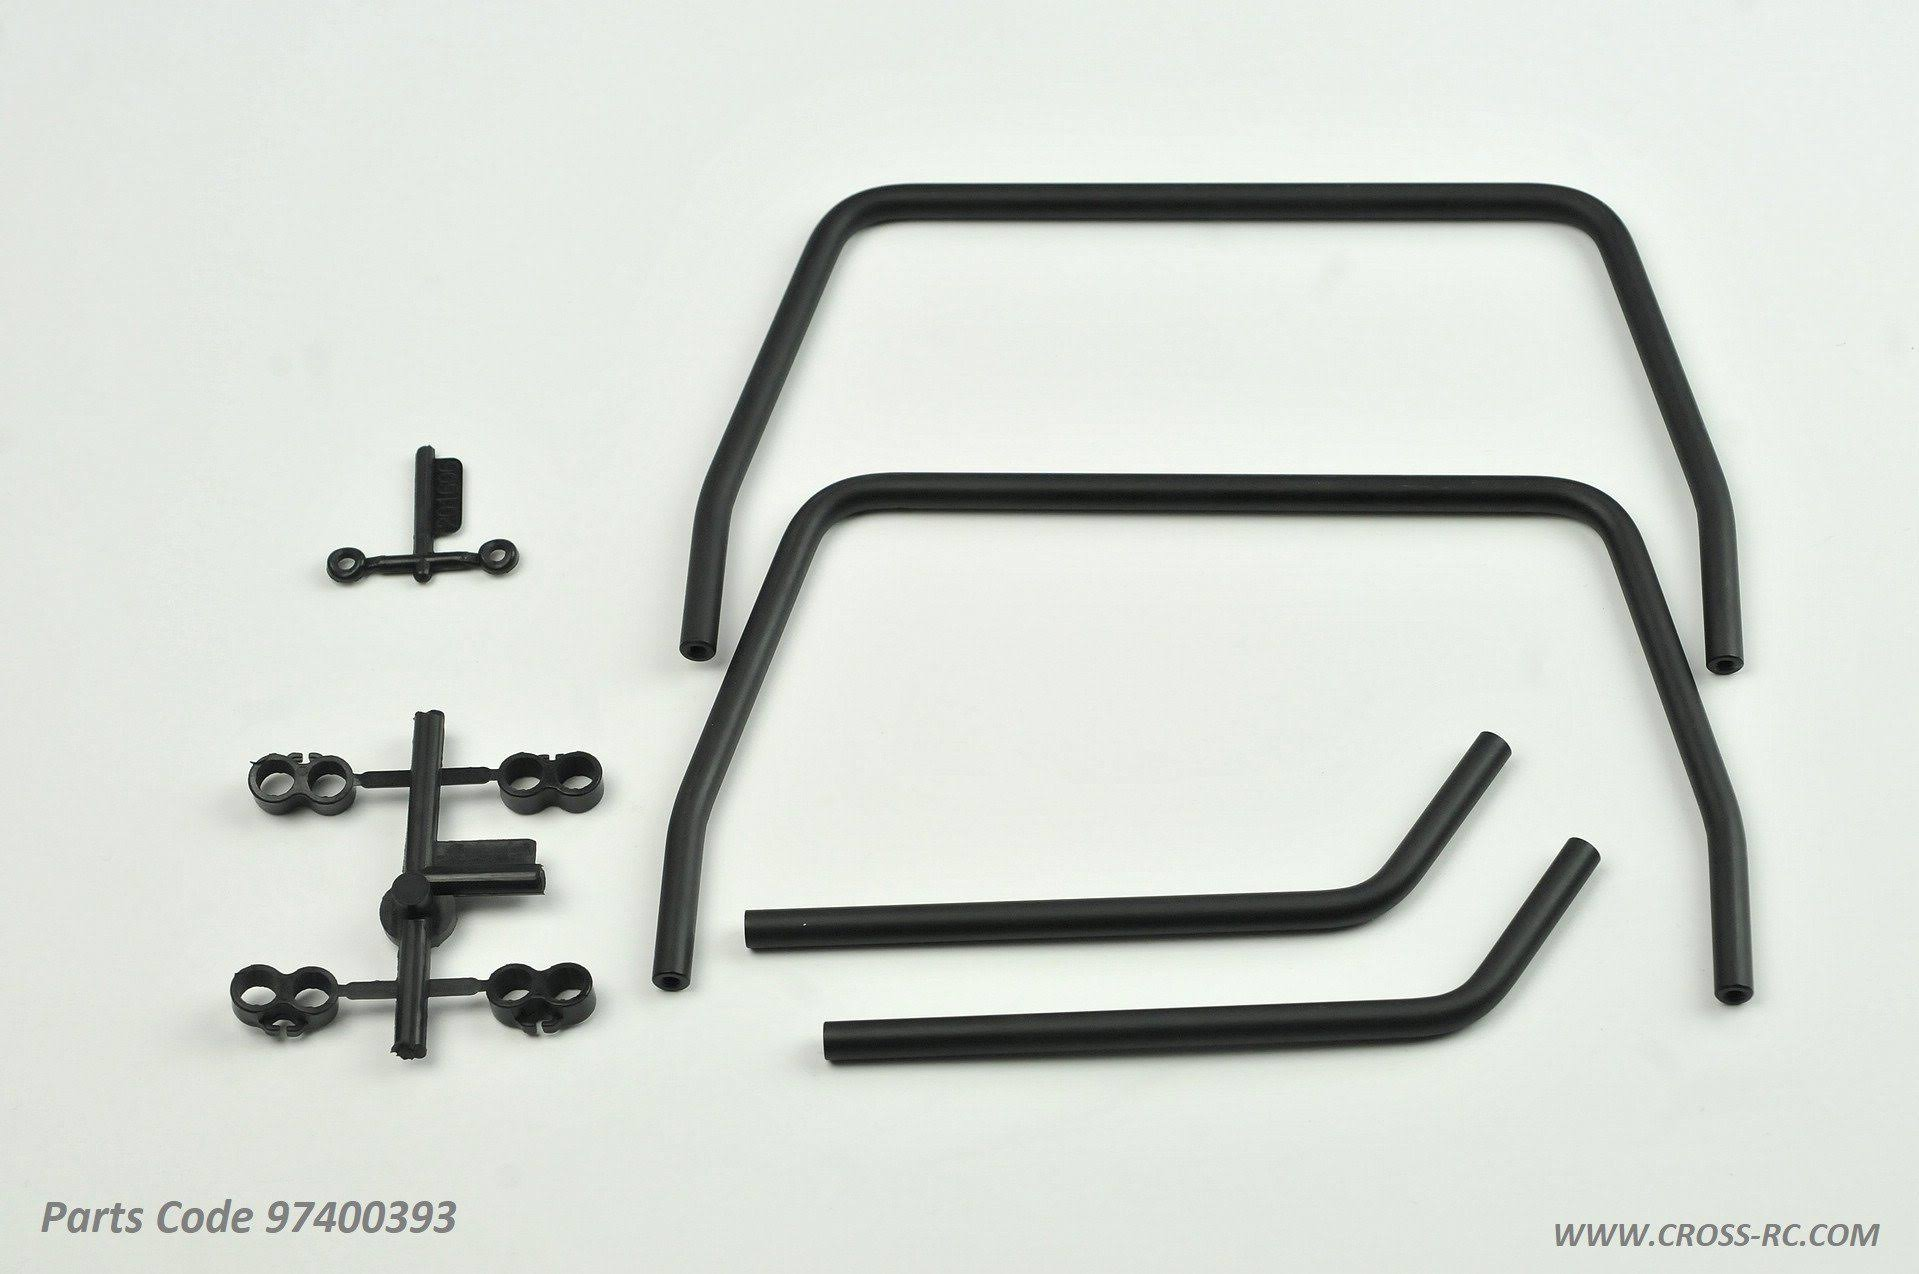 Cross RC CZR97400393 SG4 Metal Roll Bar Set